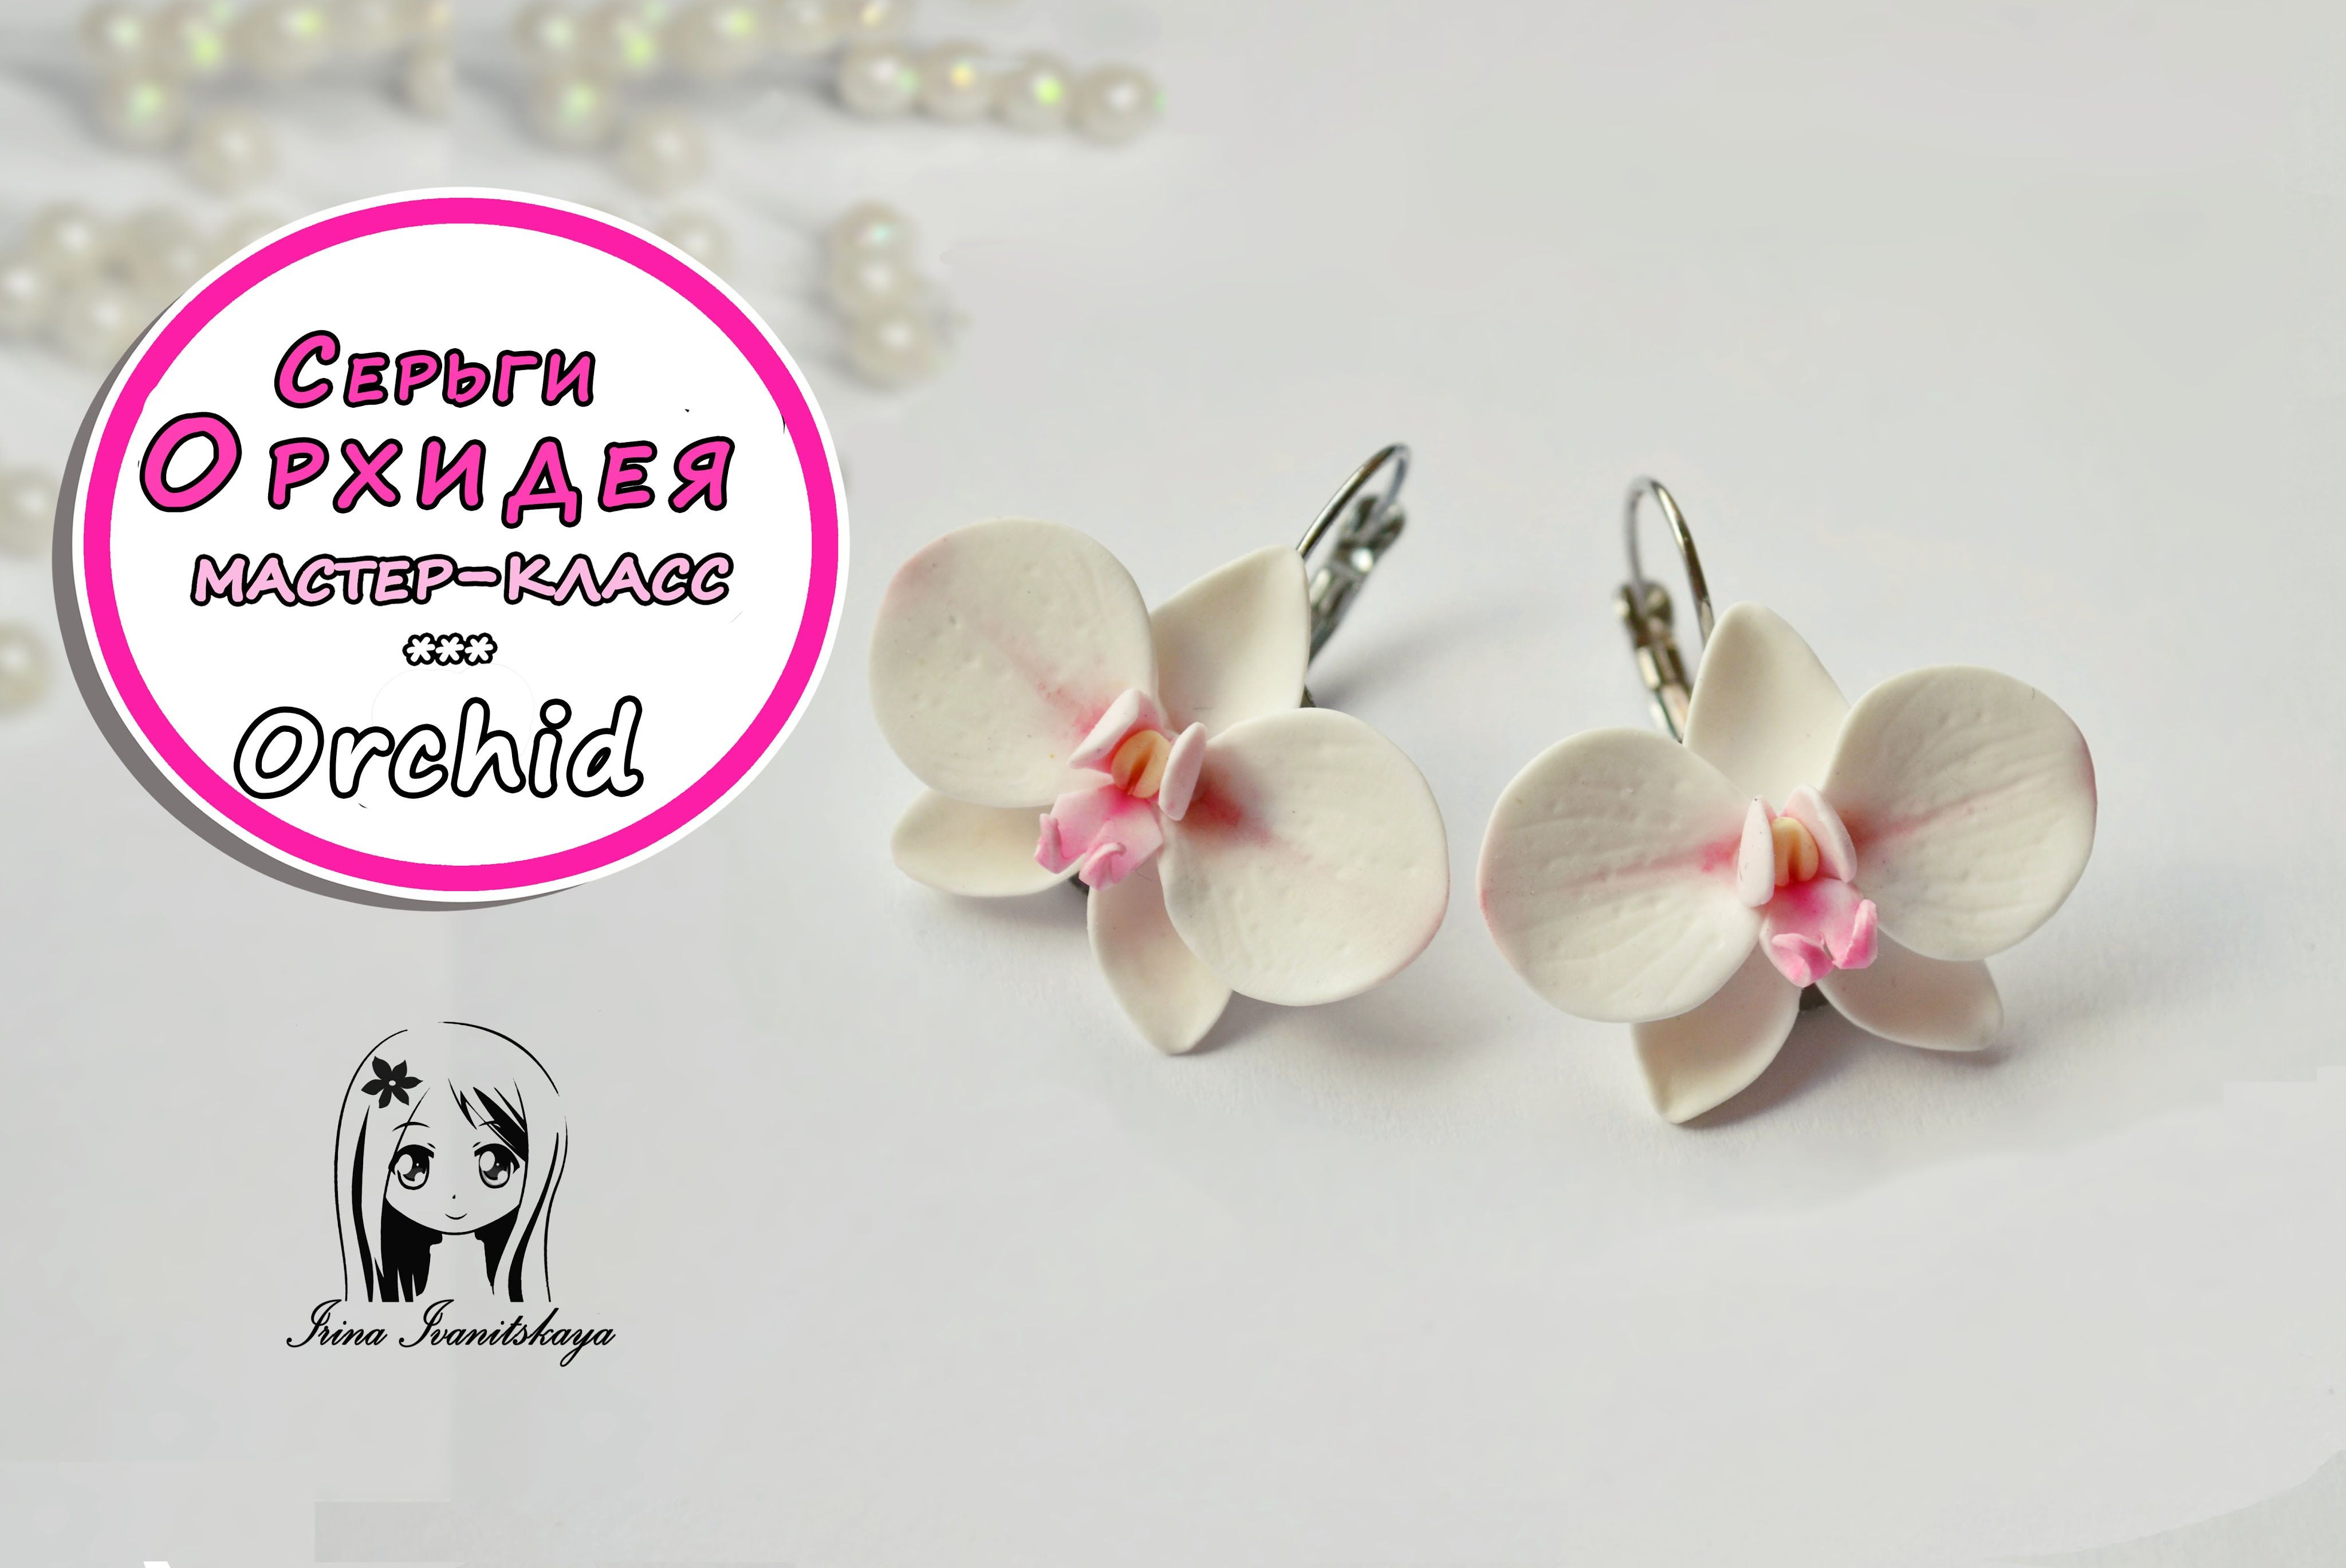 Master class sprigs of orchids 11